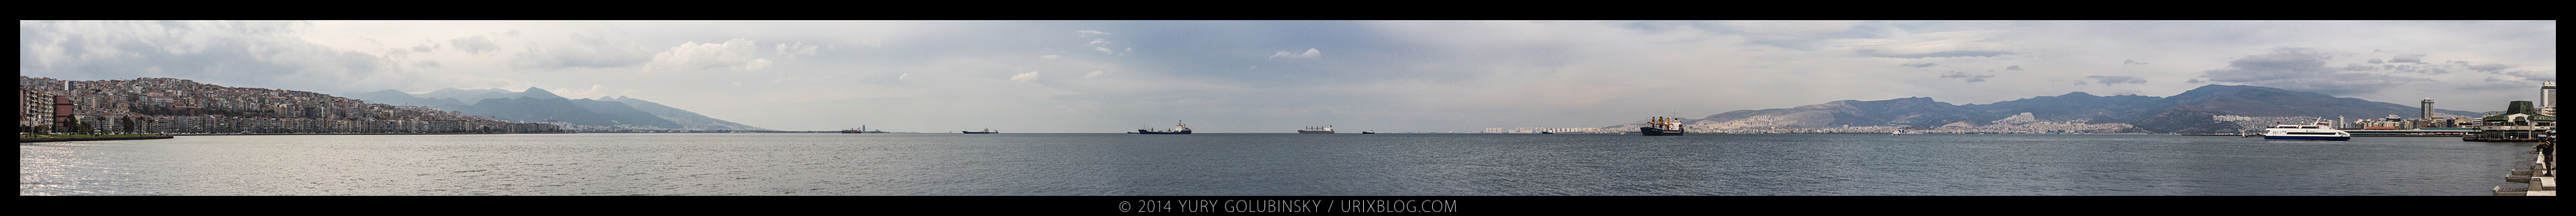 2014, Izmir, bay, Turkey, panorama, horizon, Aegean sea, seafront, embankment, ships